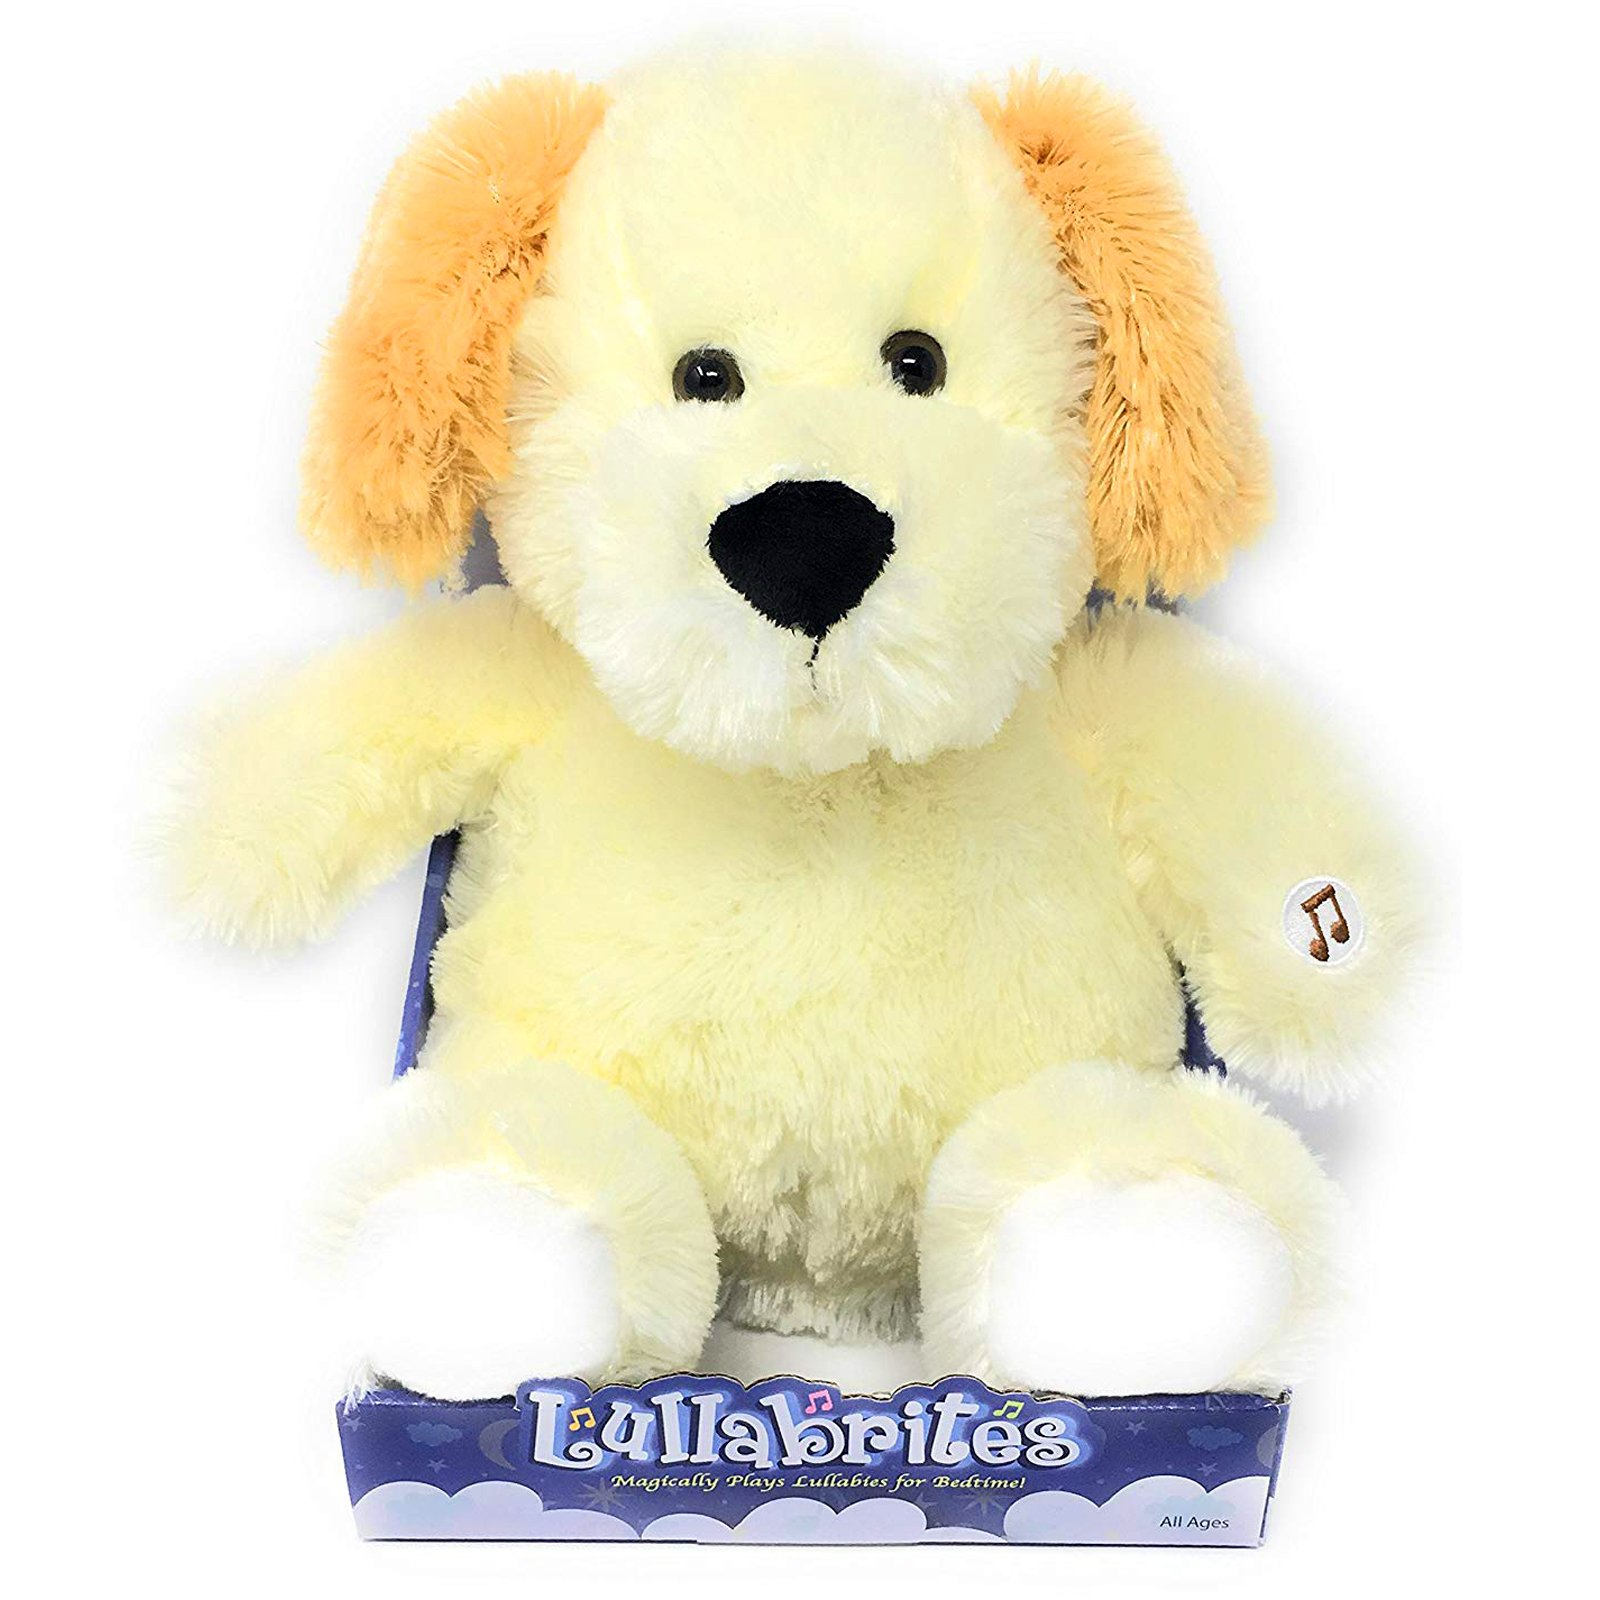 Lullabrites Kids Plush Dog Lights Up Plays Music